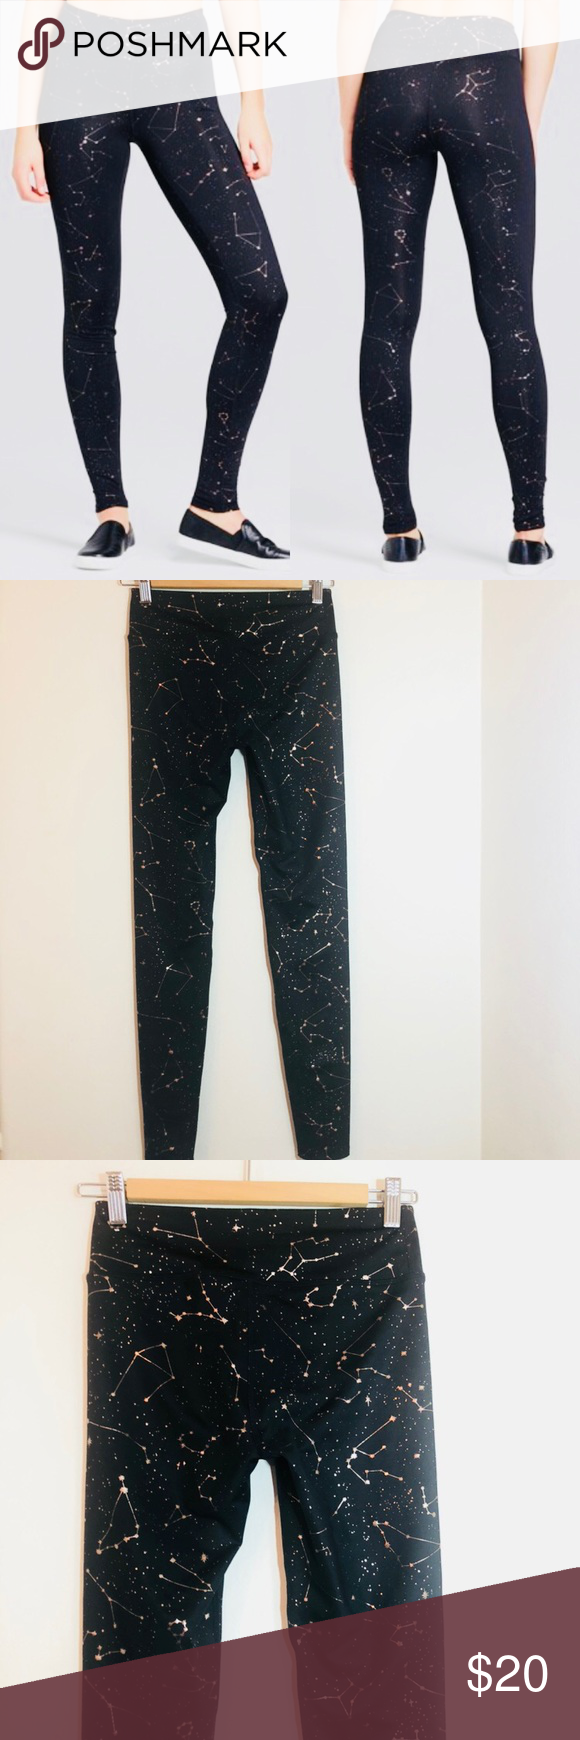 96eb129cbccfab JOY LAB | black constellation gold leggings NWOT Joy Lab black leggings  with gold constellation print